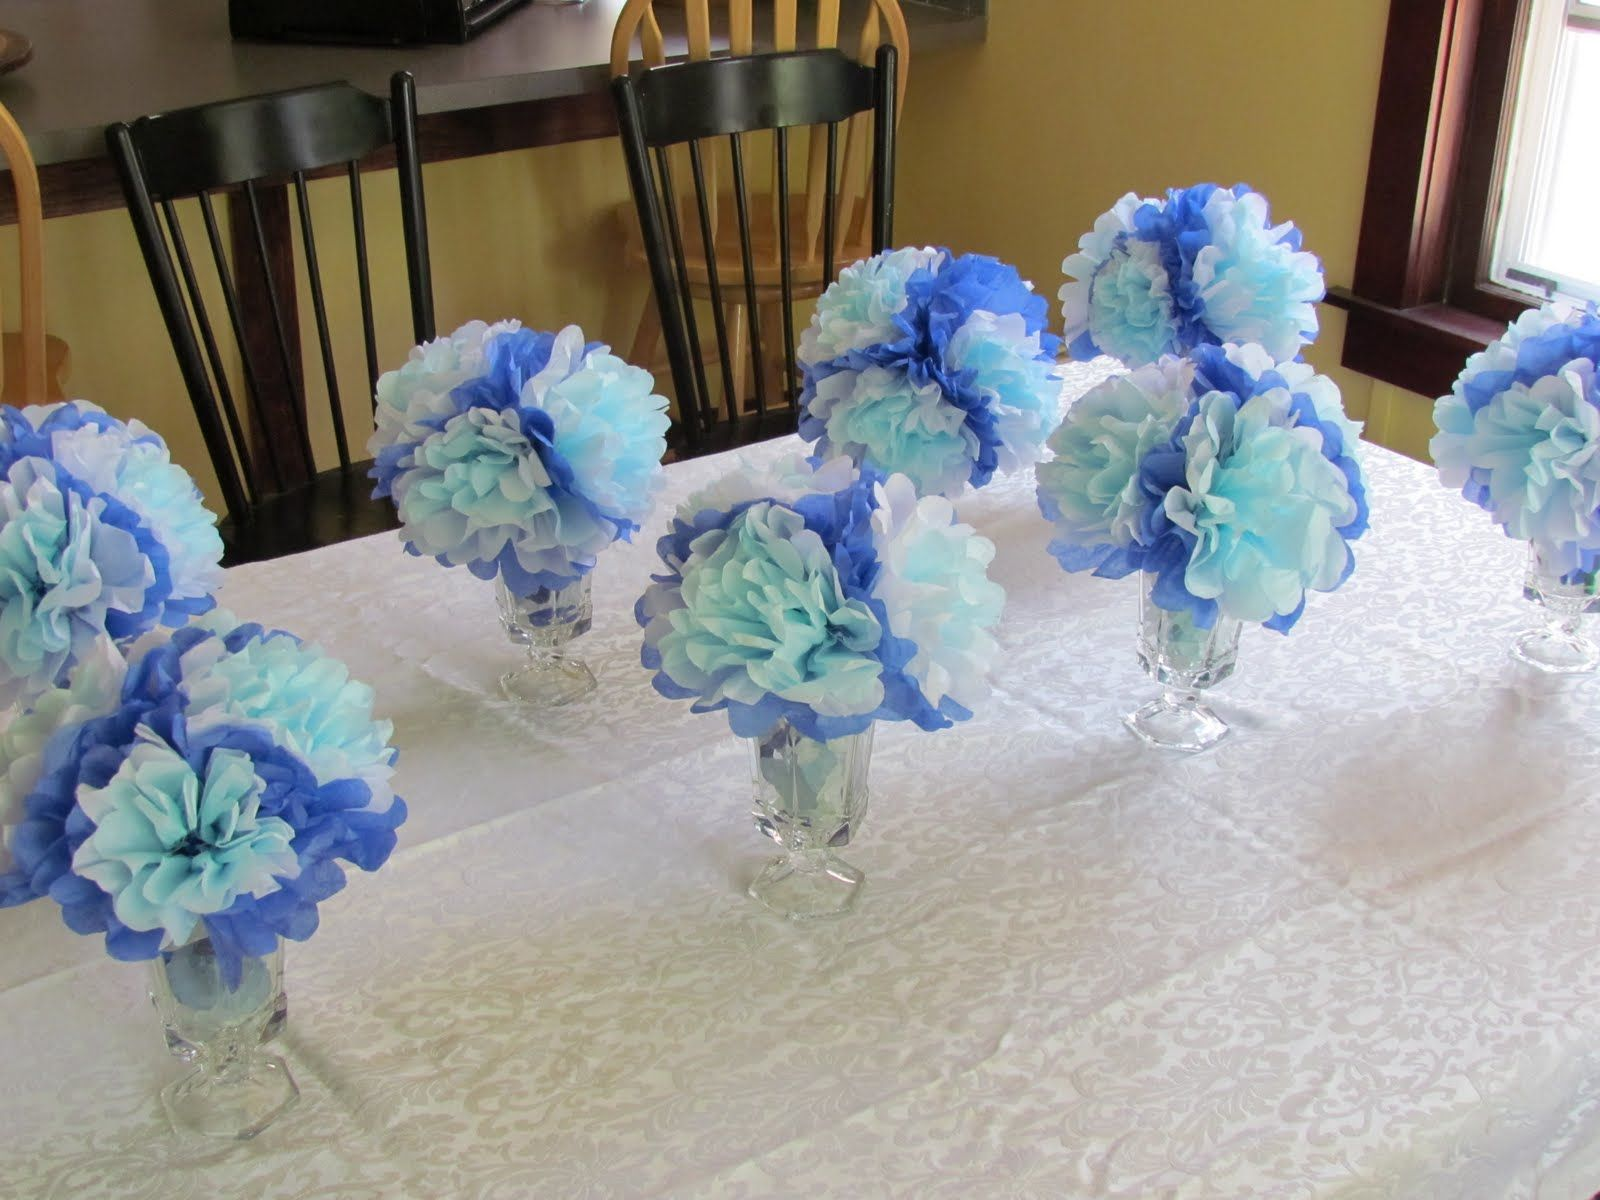 High Quality Baby Shower Ideas For Boys On A Budget | ... Decorations For My Baby